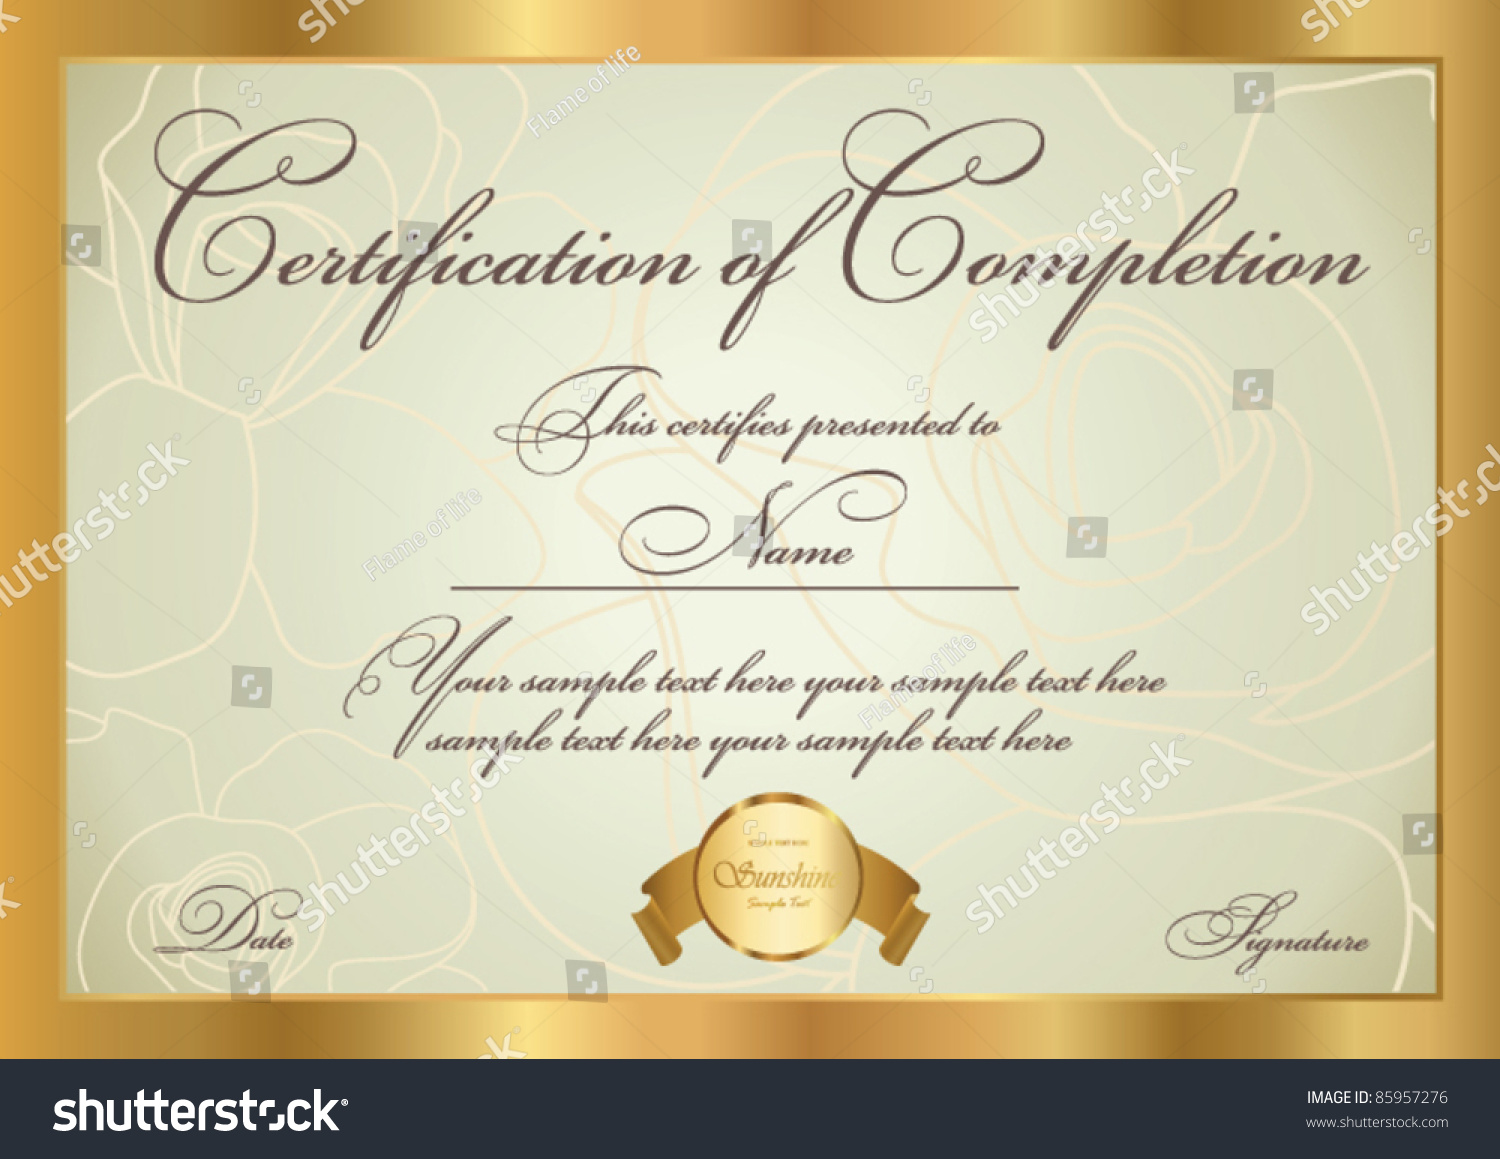 Horizontal certificate completion template golden floral stock horizontal certificate completion template golden floral stock vector 85957276 shutterstock xflitez Image collections